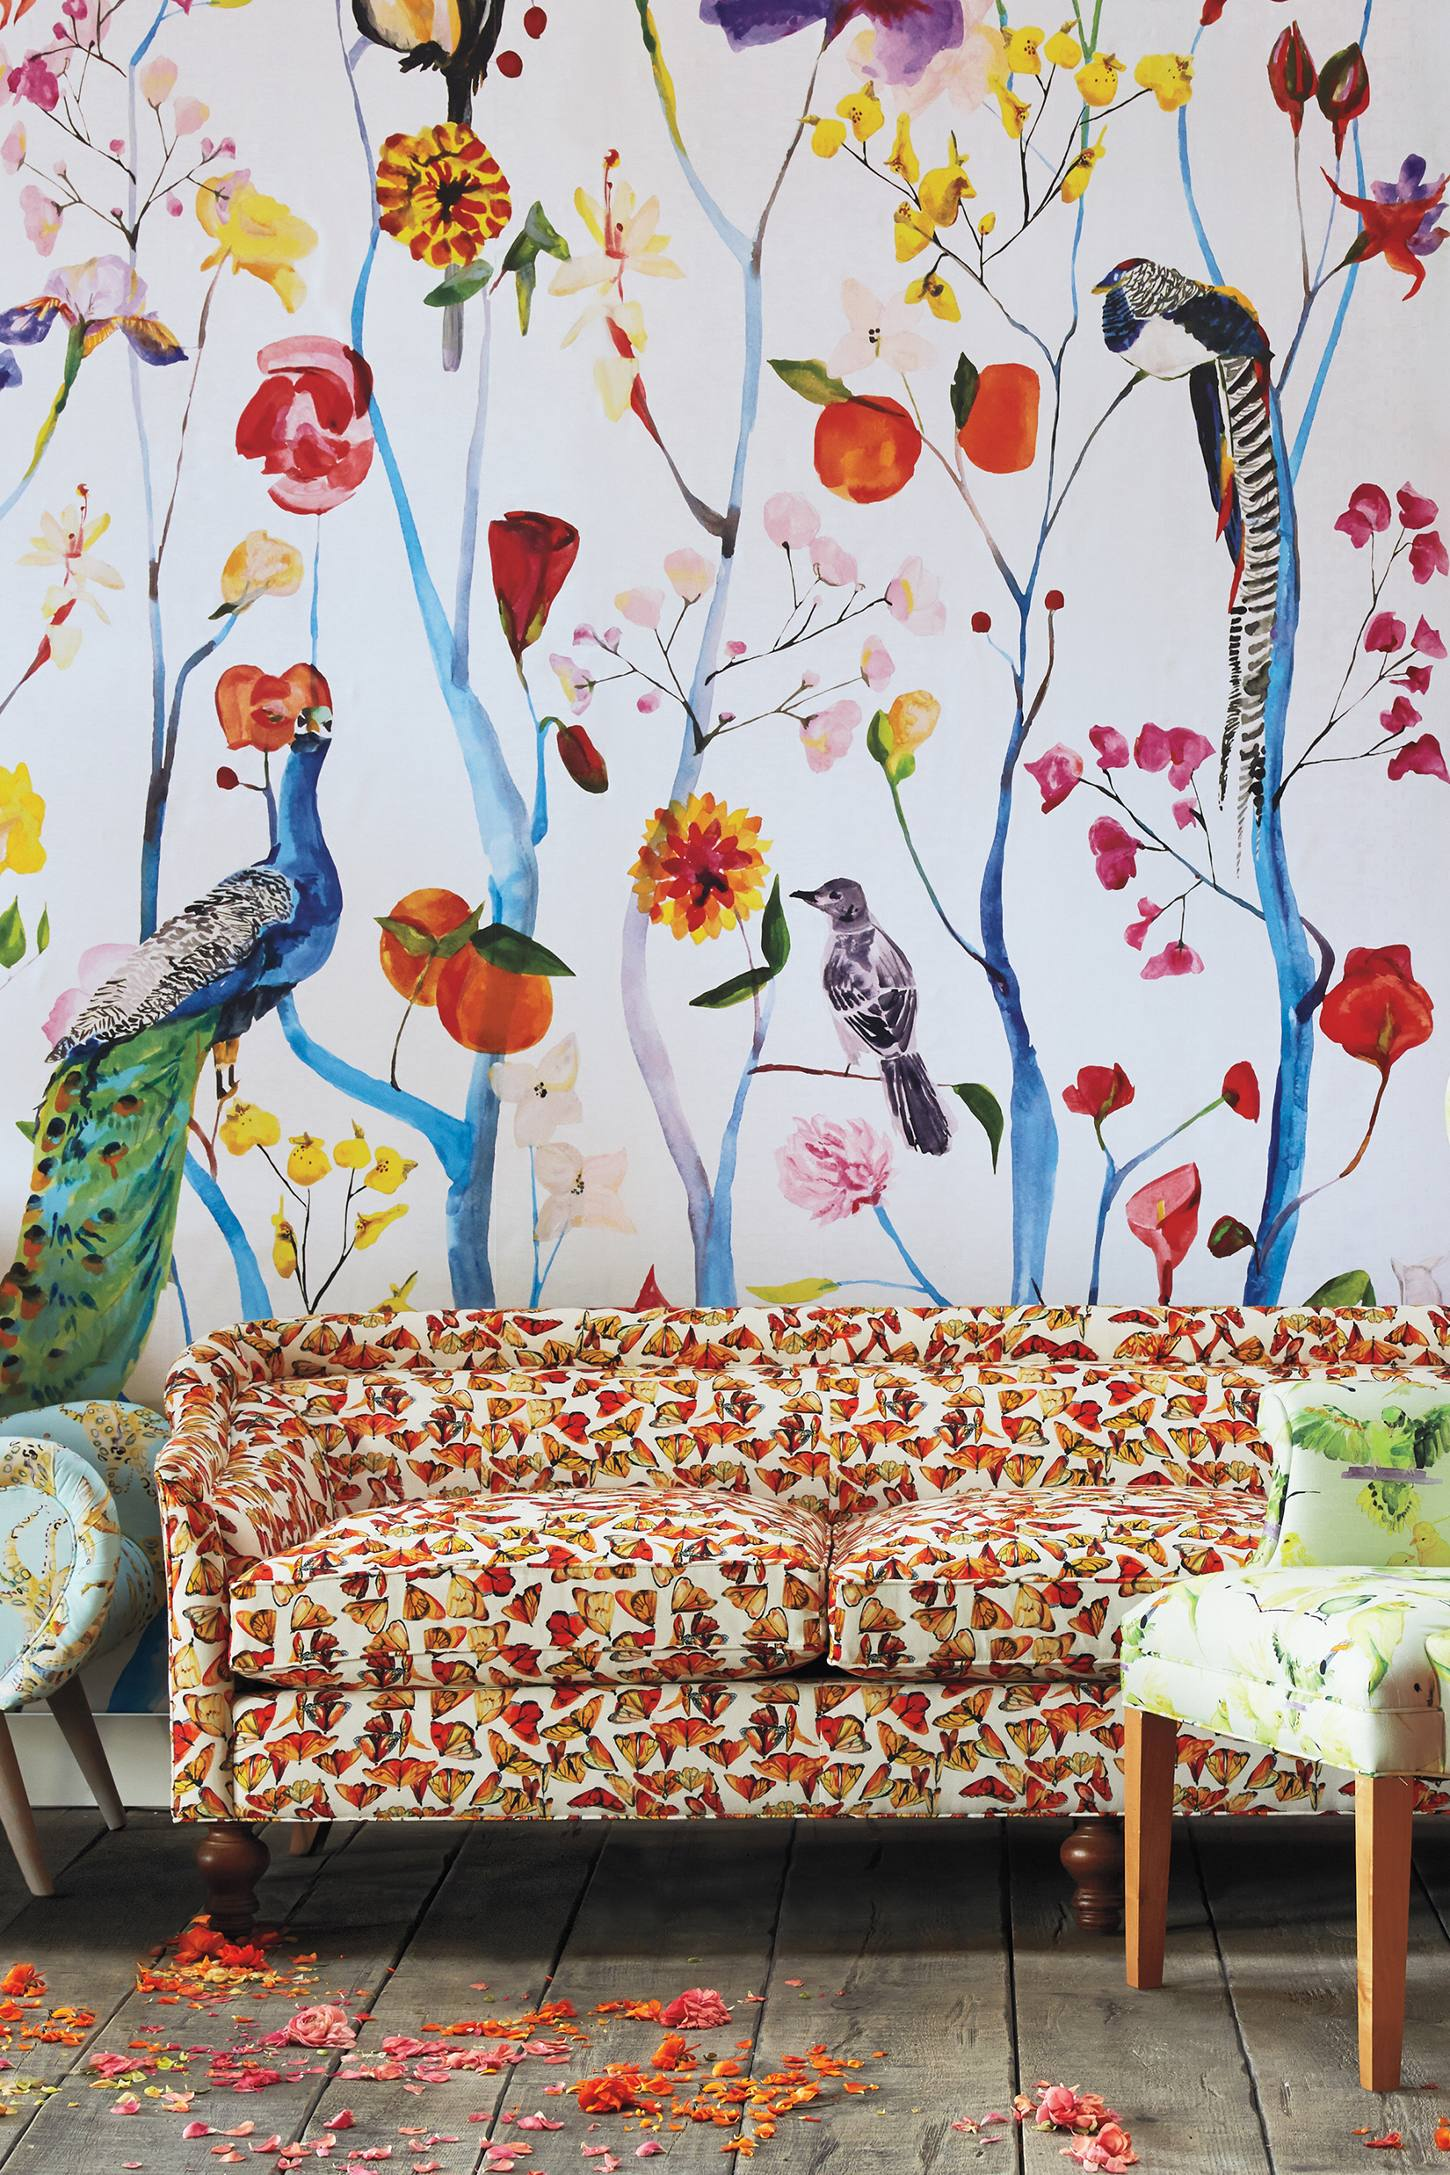 Garden chinoiserie mural anthropologie for Anthropologie wallpaper mural